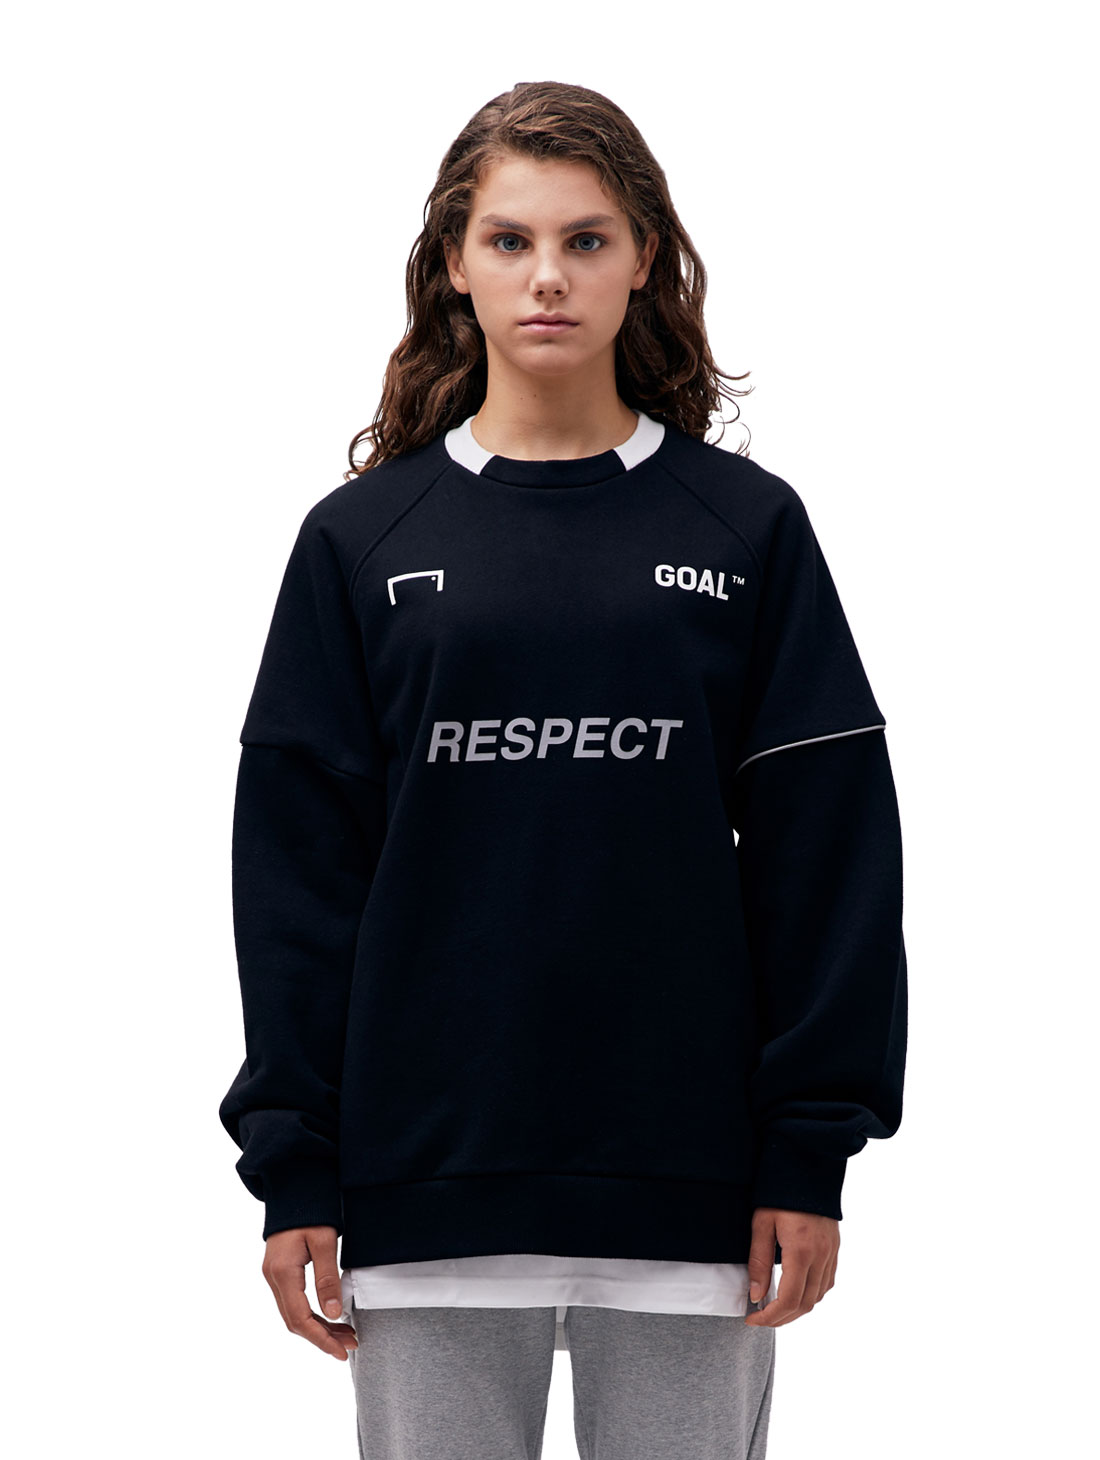 GOALSTUDIO (Sold Out) RESPECT SWEATSHIRT - BLACK